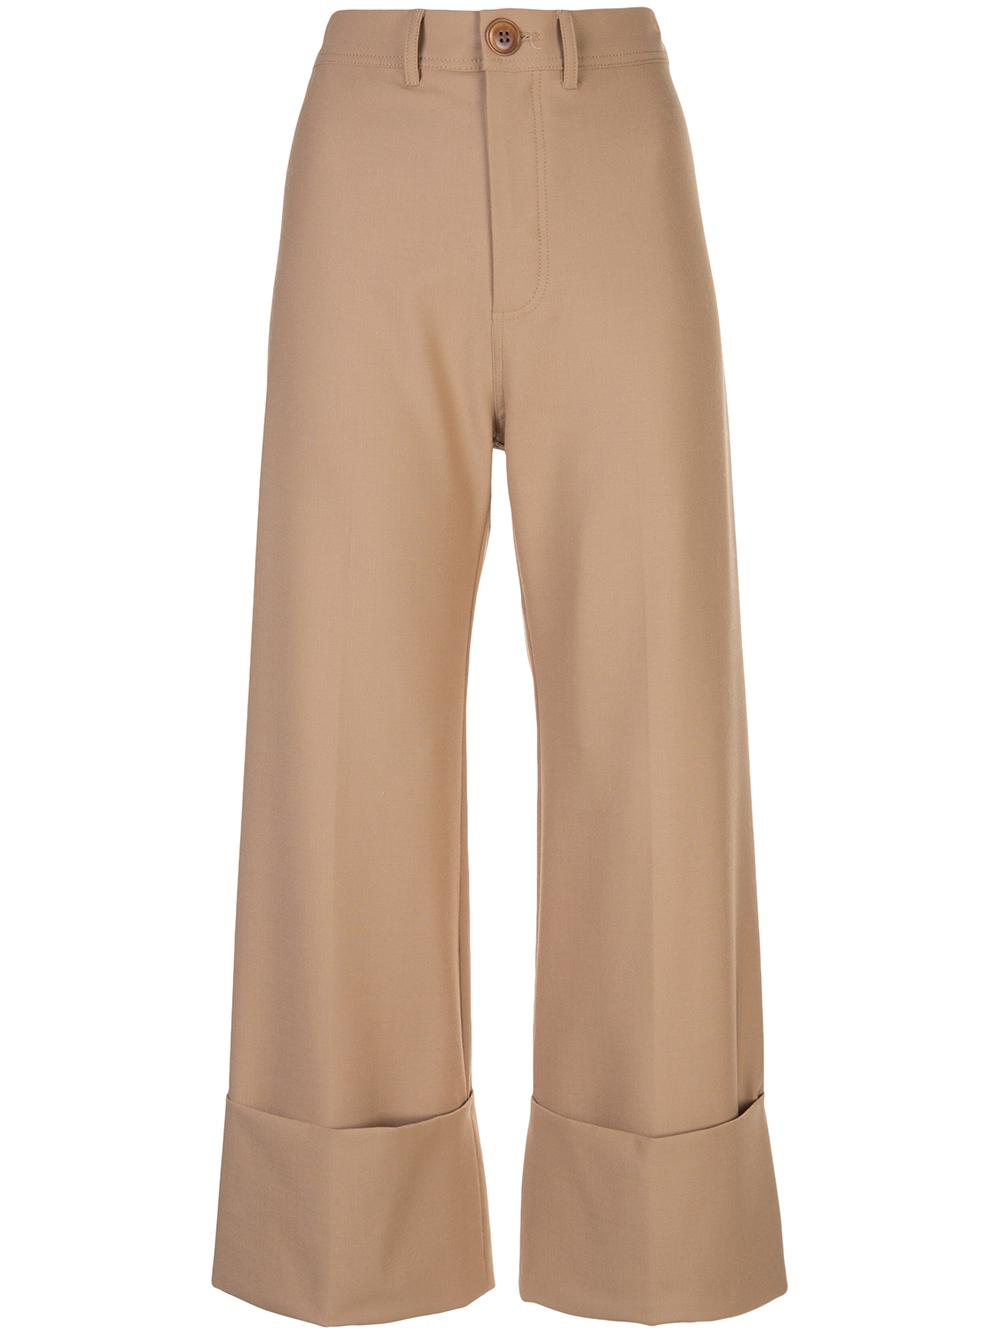 Hayes Cuff Crop Wool Solid Pant Item # AW19-41